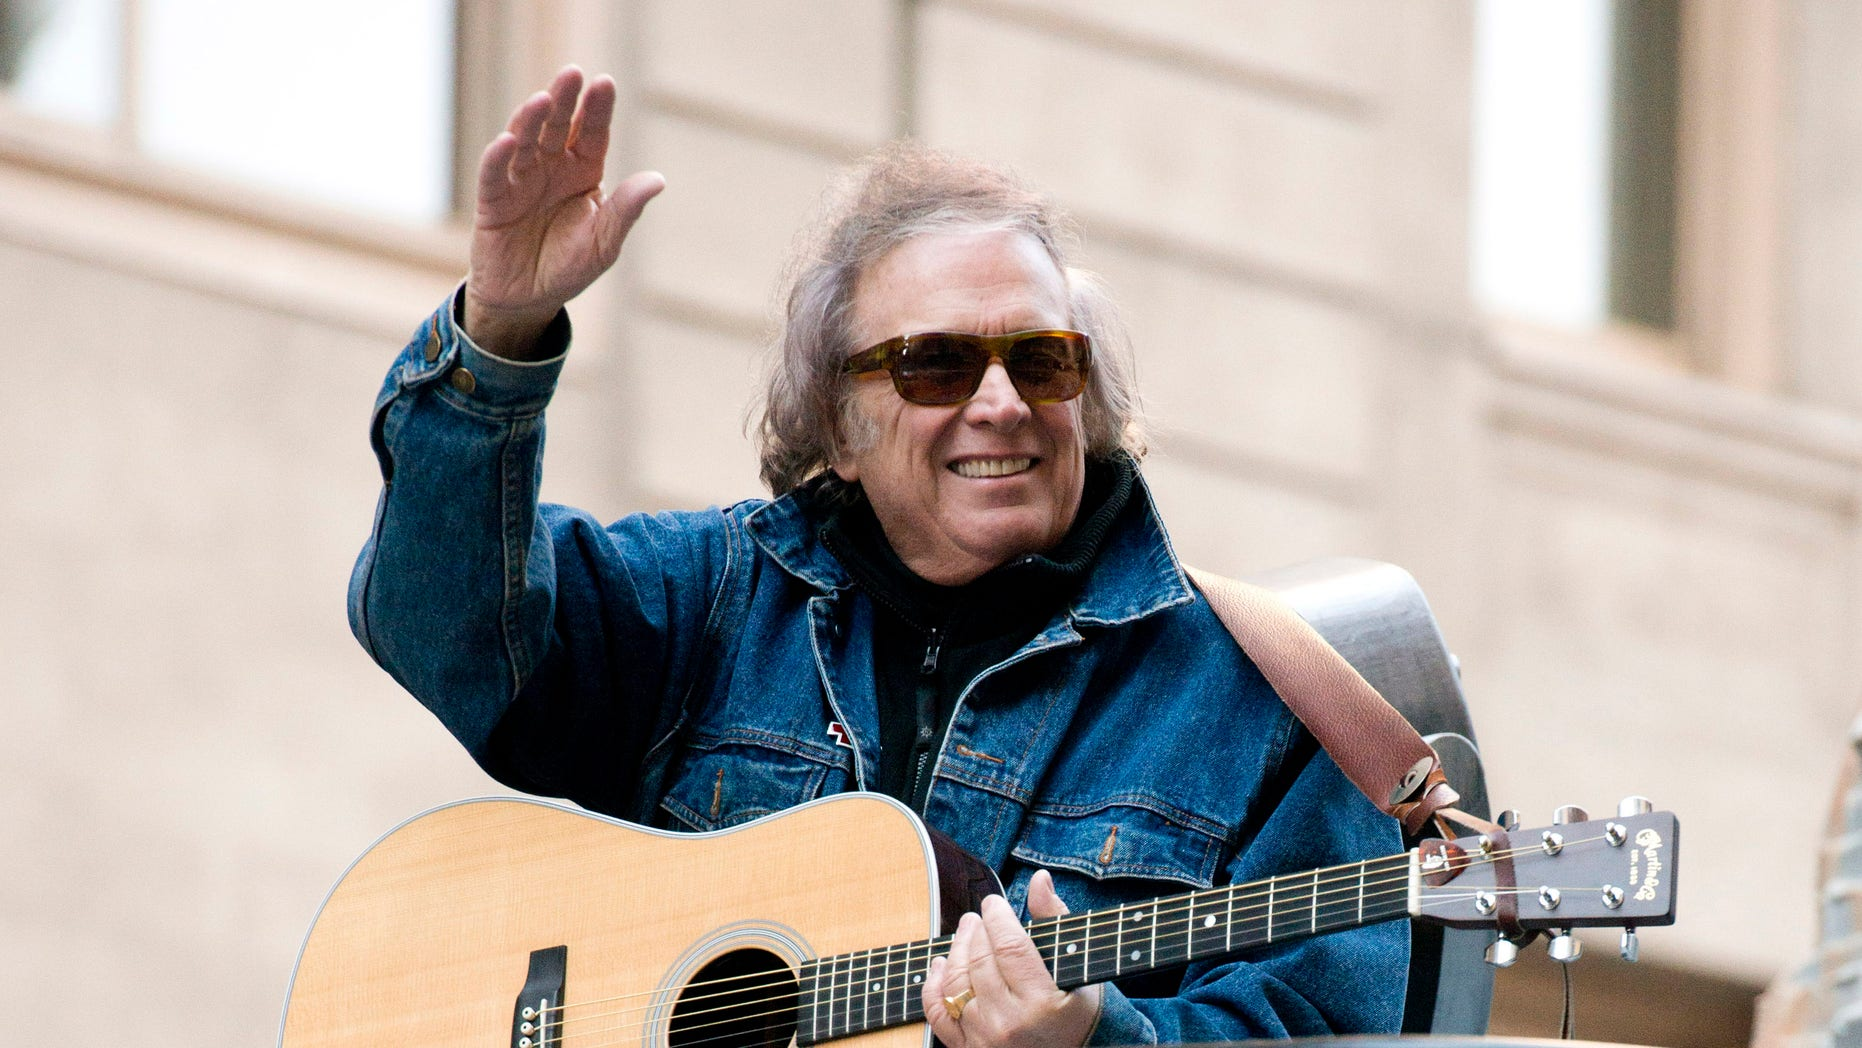 """FILE - In this Nov. 22, 2012 file photo, Don McLean rides a float in the Macy's Thanksgiving Day Parade in New York. McLean and his wife have finalized their divorce and agreed to a $10 million settlement.A spokesman for McLean said Monday, June 20, 2016, that the singer """"chose to ignore a premarital agreement"""" and provide the settlement.  (AP Photo/Charles Sykes, File)"""